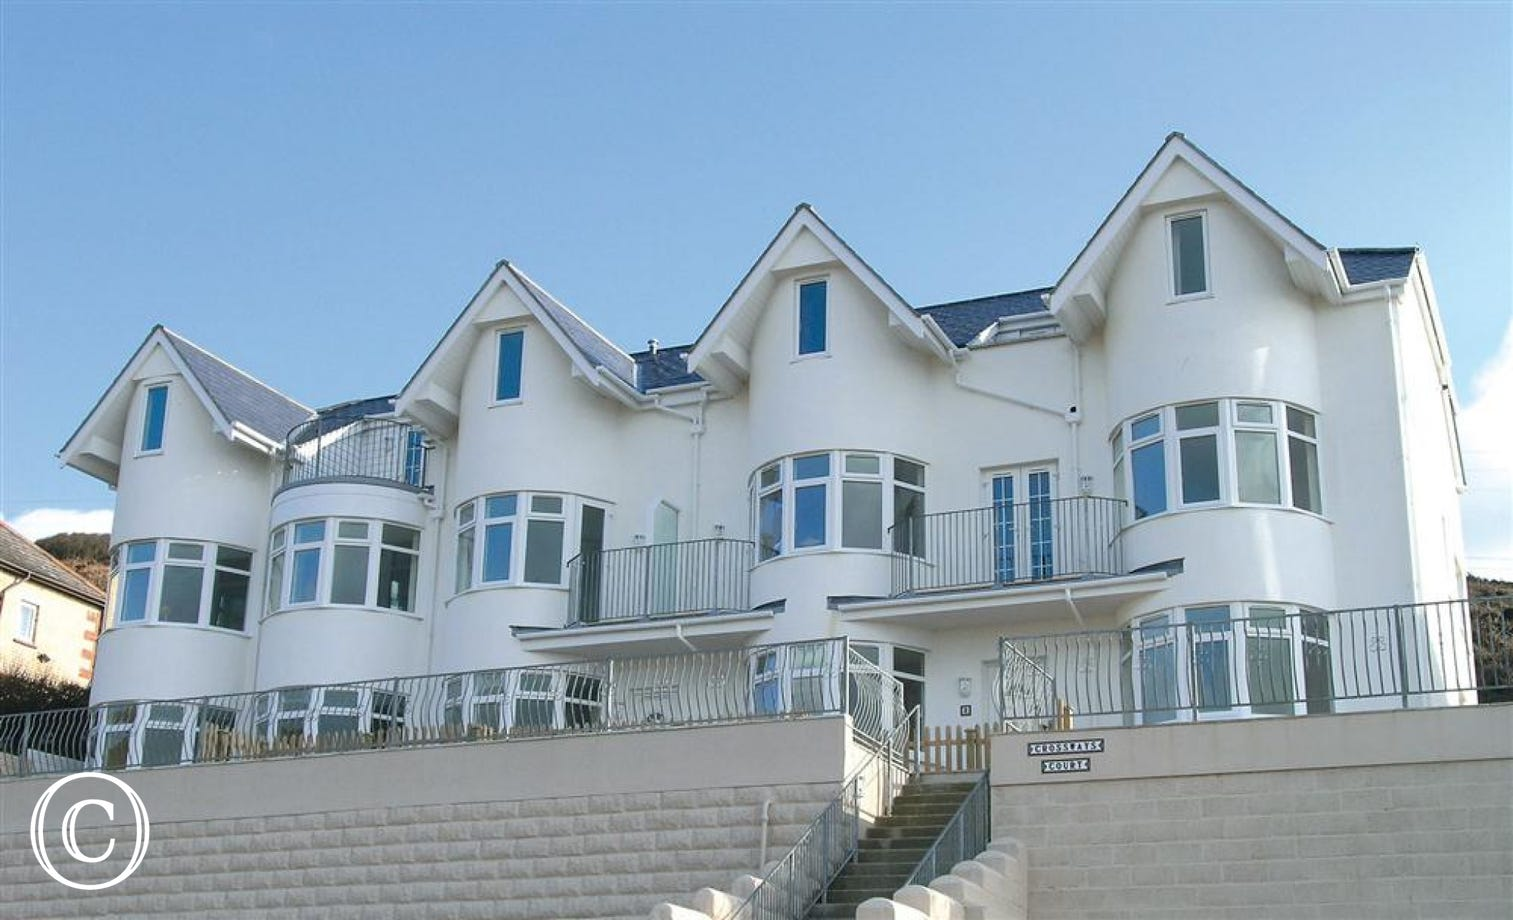 Crossways Court is where you will find Waves End in Woolacombe